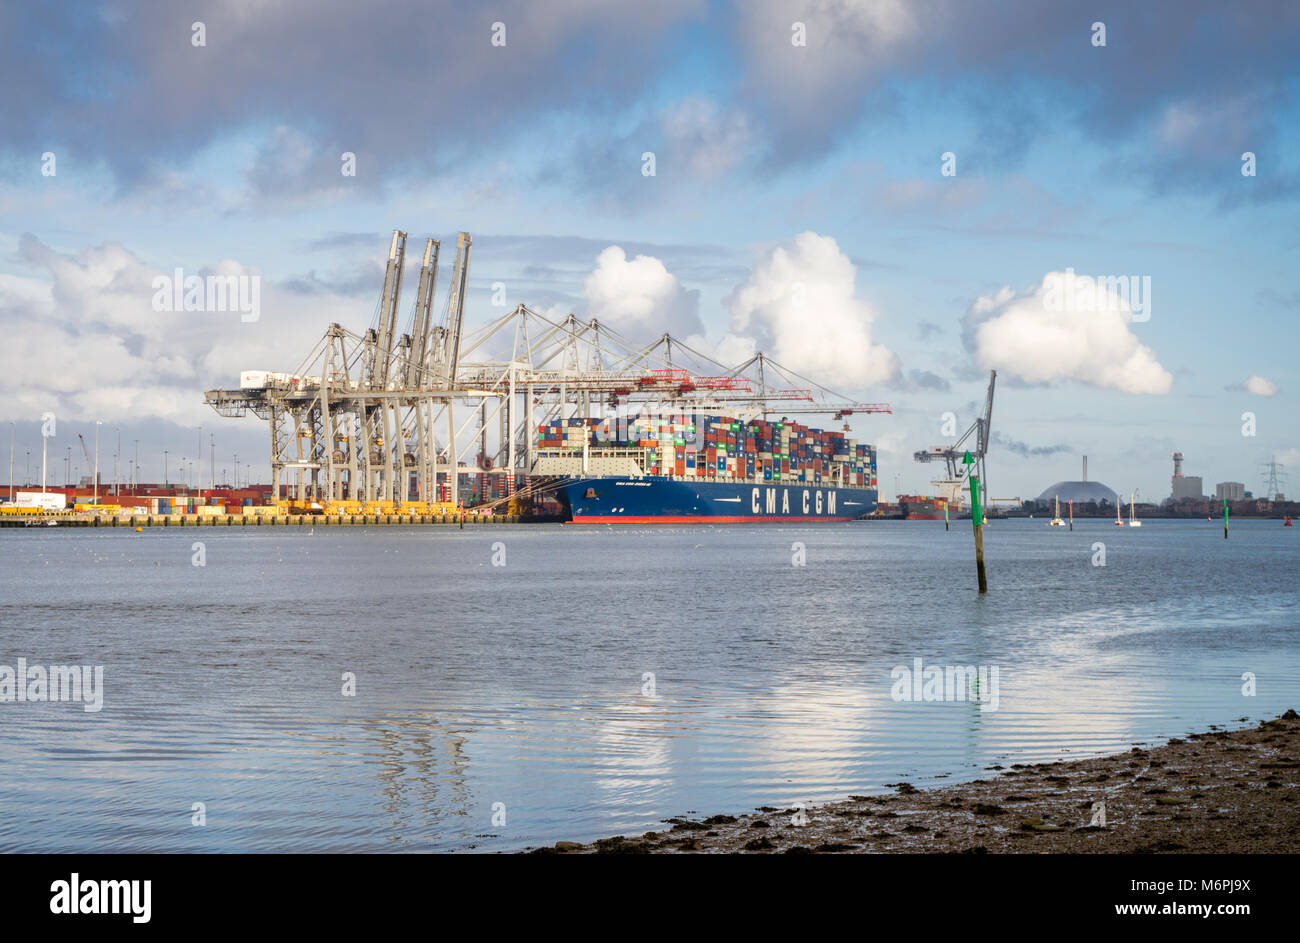 View over the River Test to Southampton port/ docks with a container/ cargo ship being unloaded/offloaded in March - Stock Image